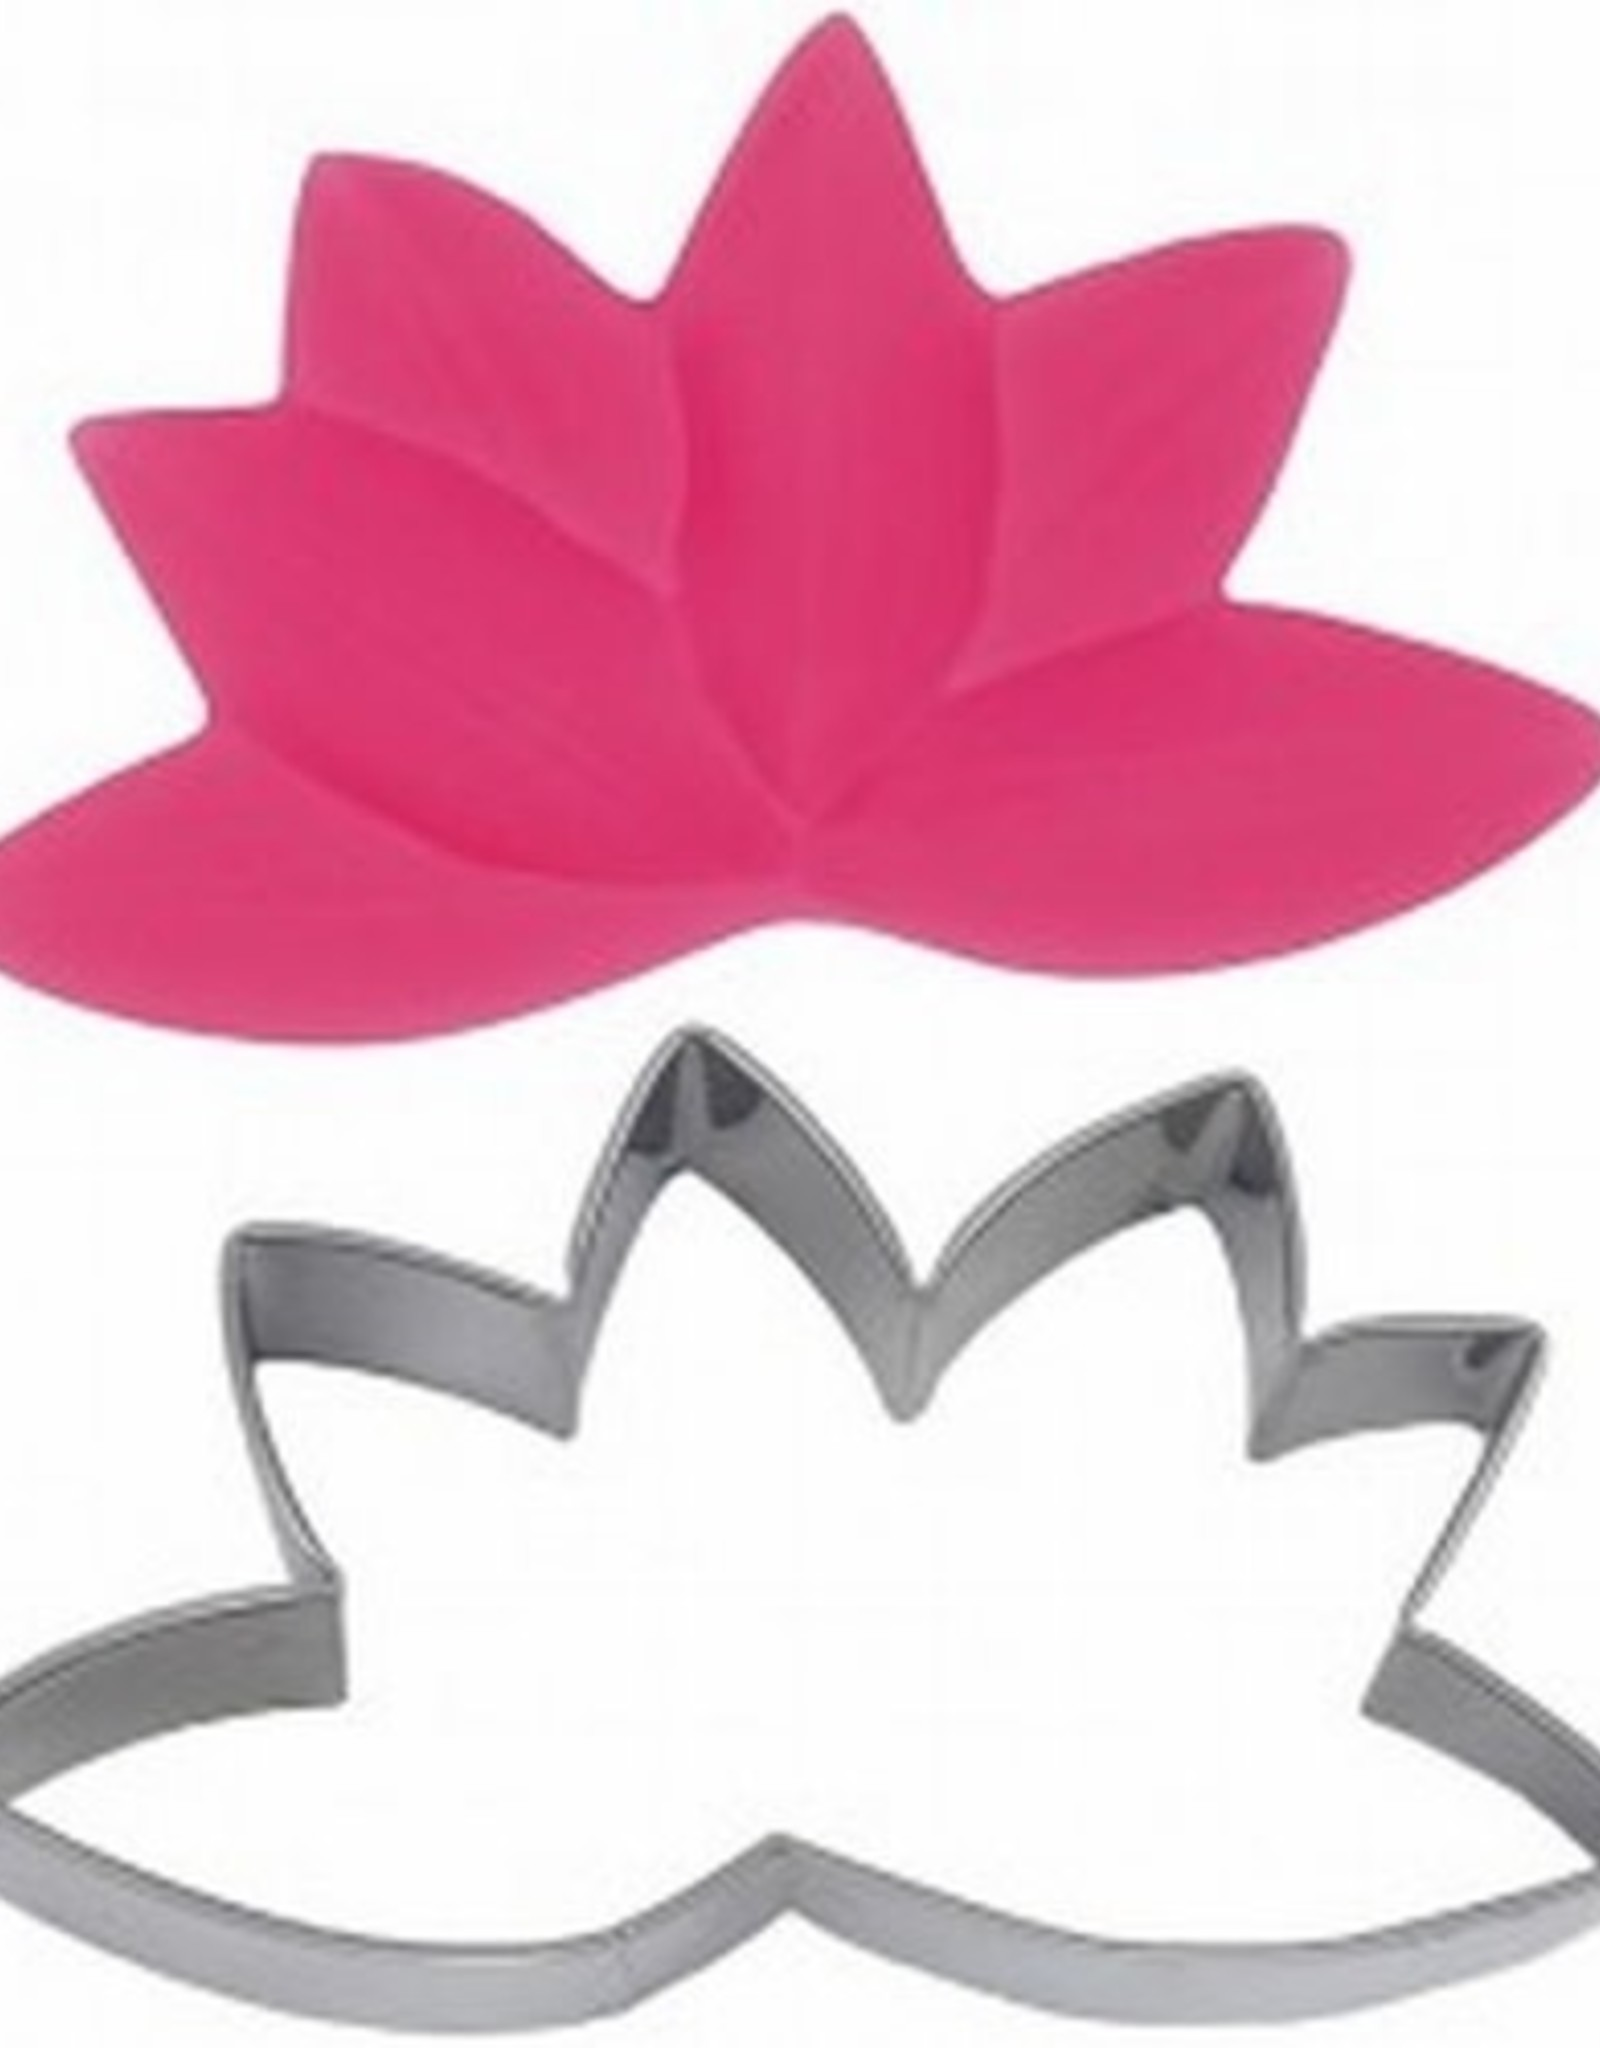 Blossom Sugar Art Blossom Sugar Art Cutter & Mould Lily